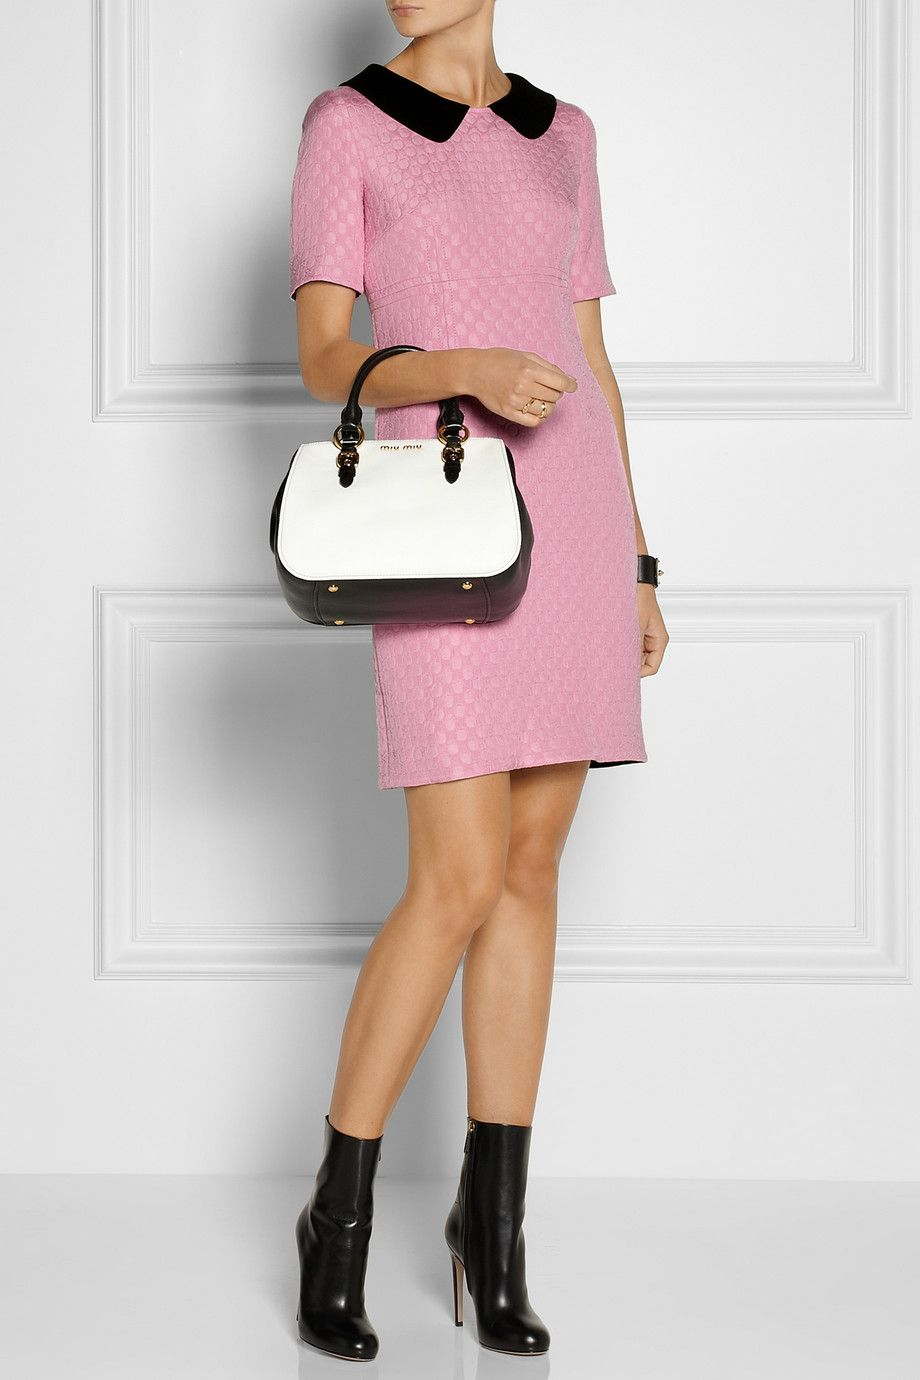 Moschino Cheap and Chic | Polka-dot matelassé dress | NET-A-PORTER.COM